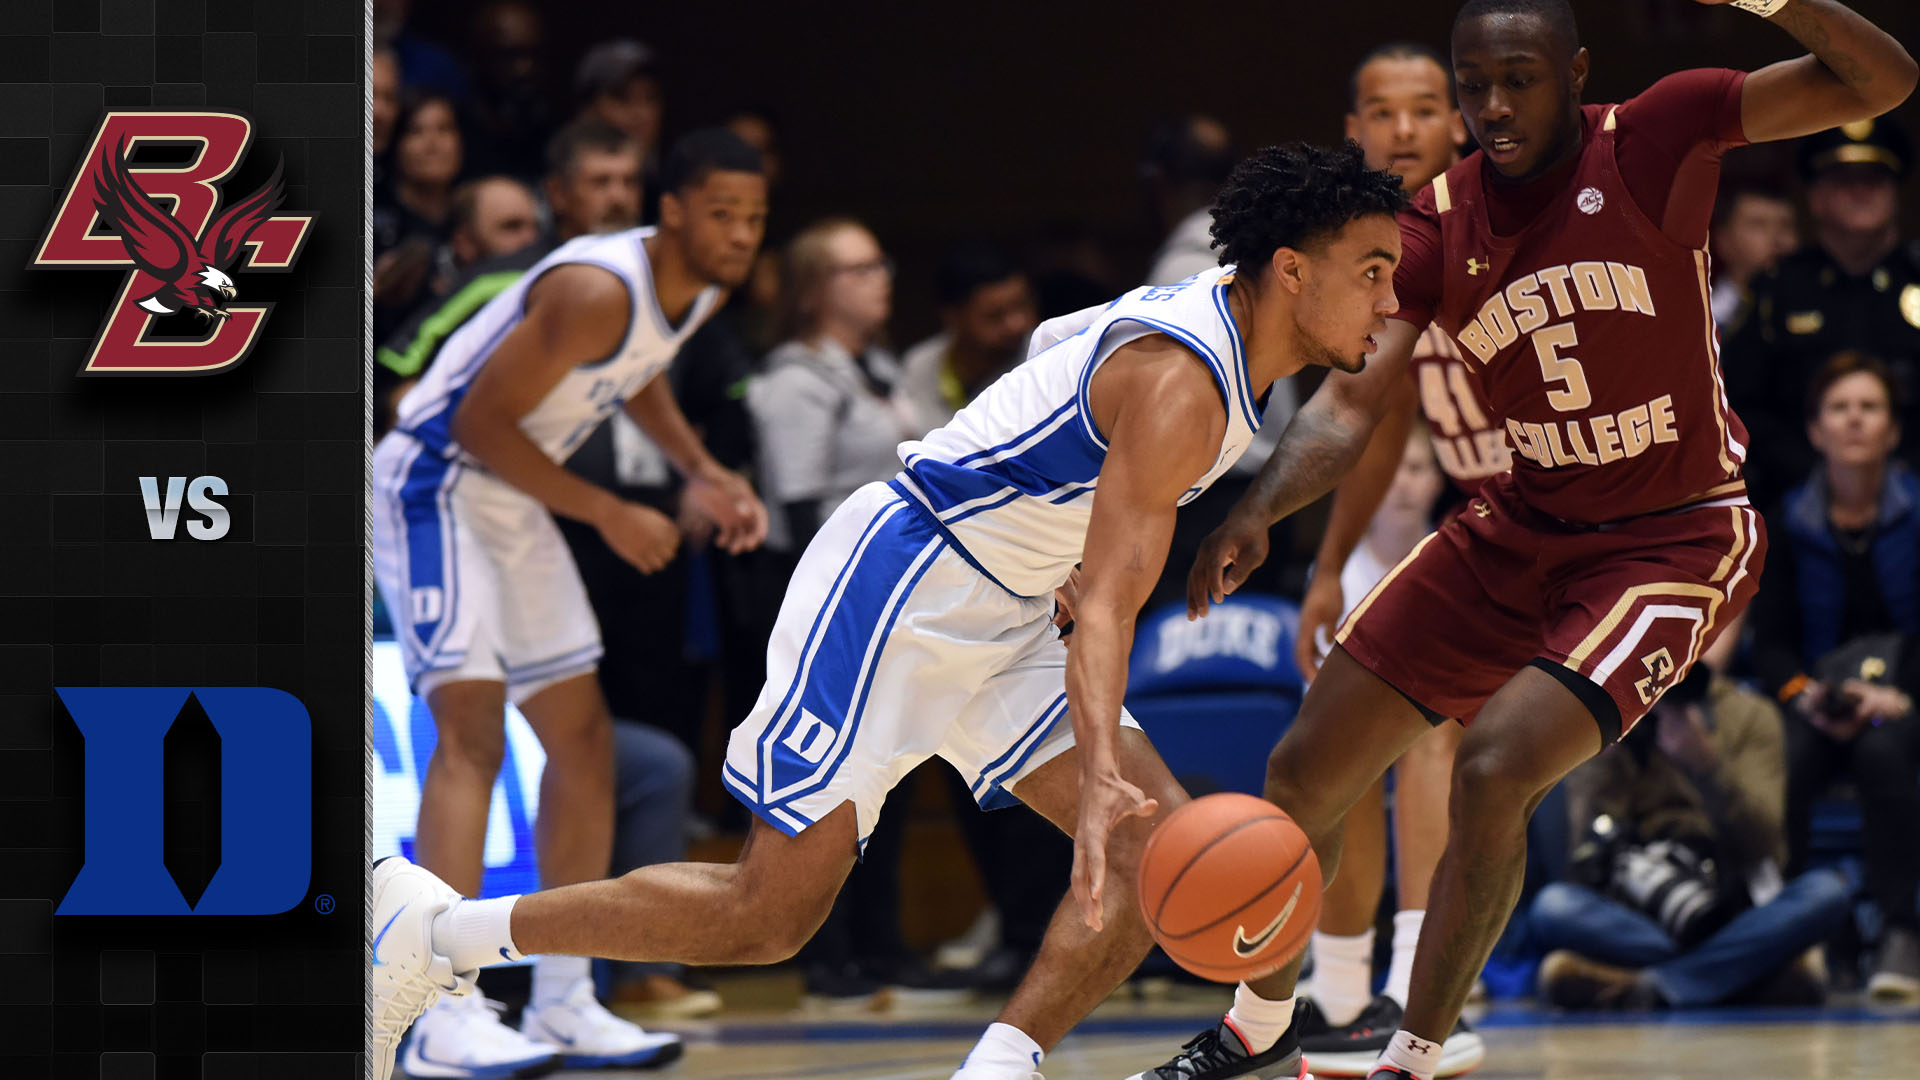 Duke Crushes Boston College by 39 ( 88-49 ) Matthew Hurt scores 25; Jones with 10 assists